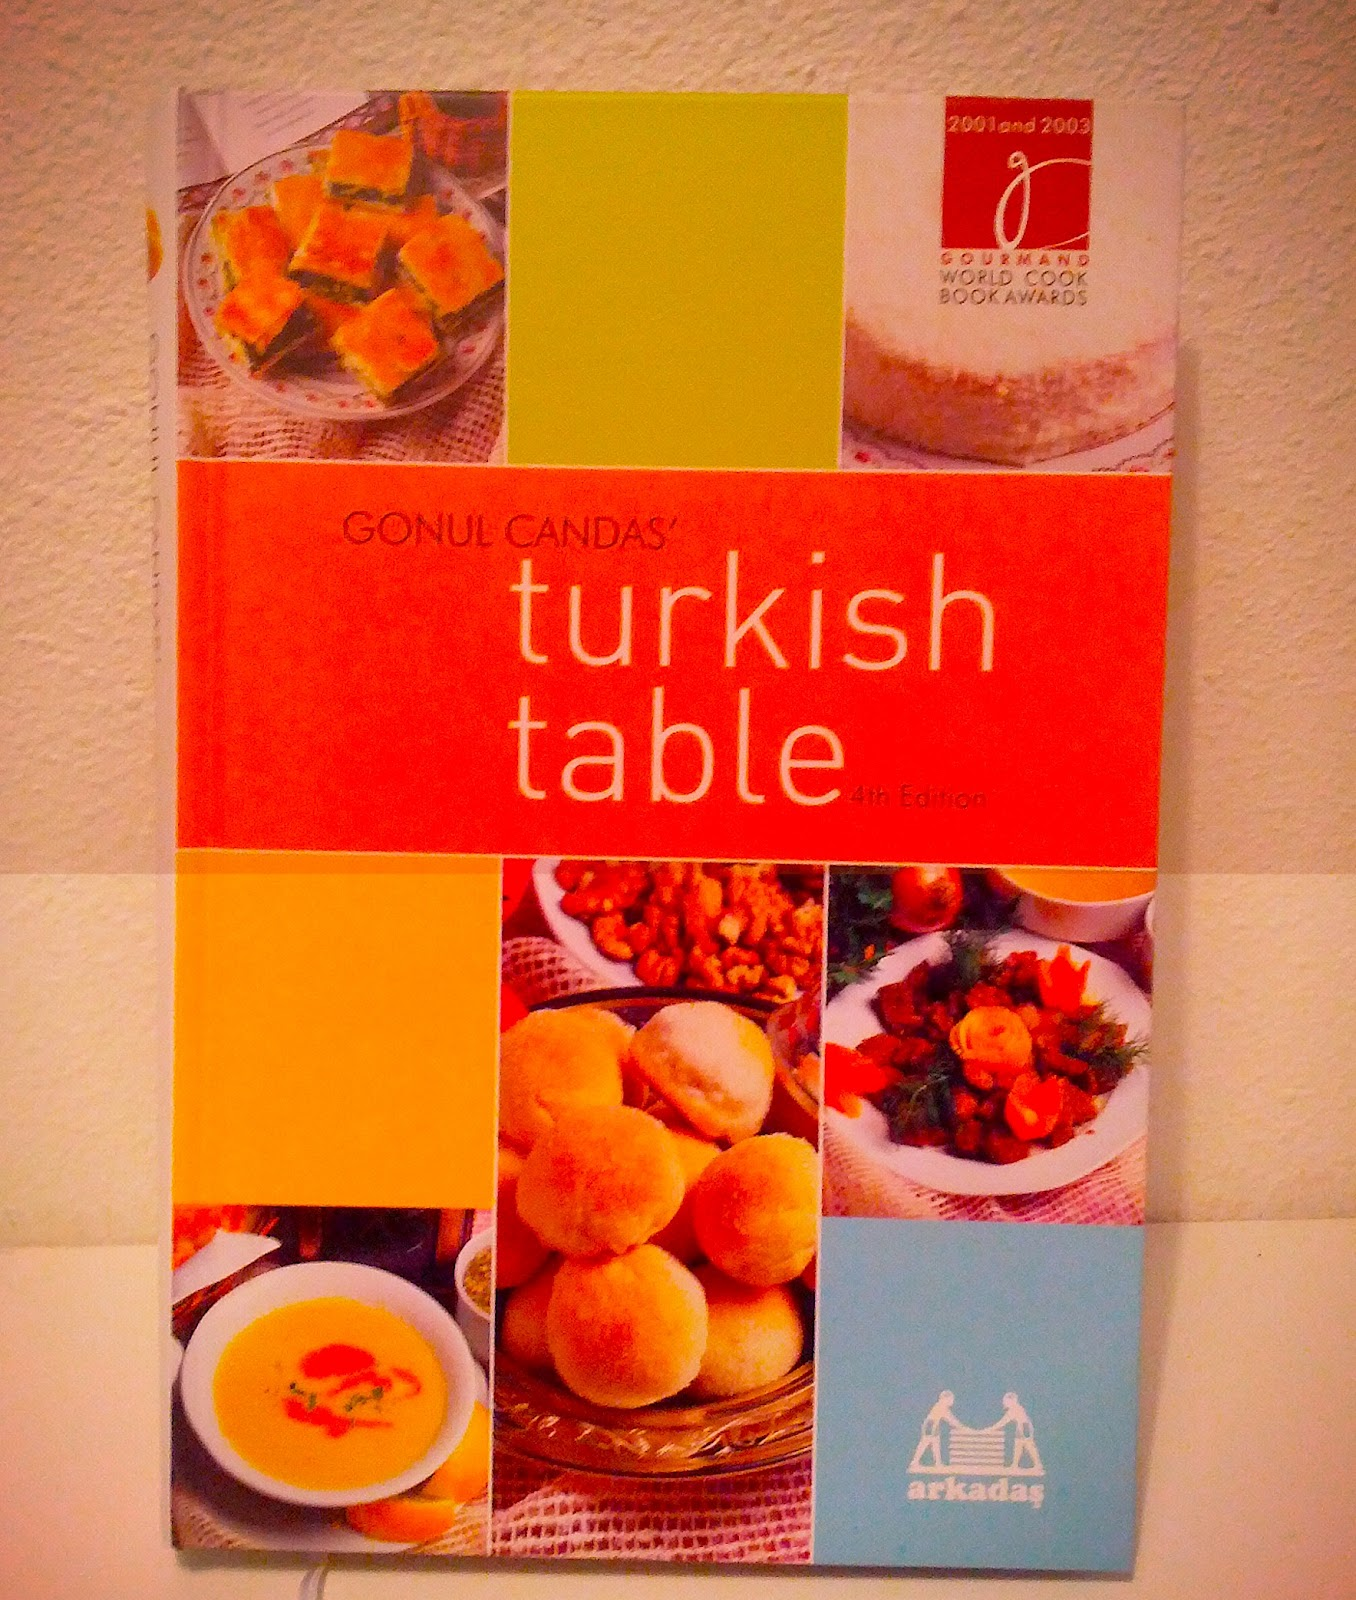 Martha would be proud recipes and tasty things istanbul recipe book inspired to learn to chef up some of these incredibly tasty bites i purchased this book gonul candas turkish table 4th edition forumfinder Images